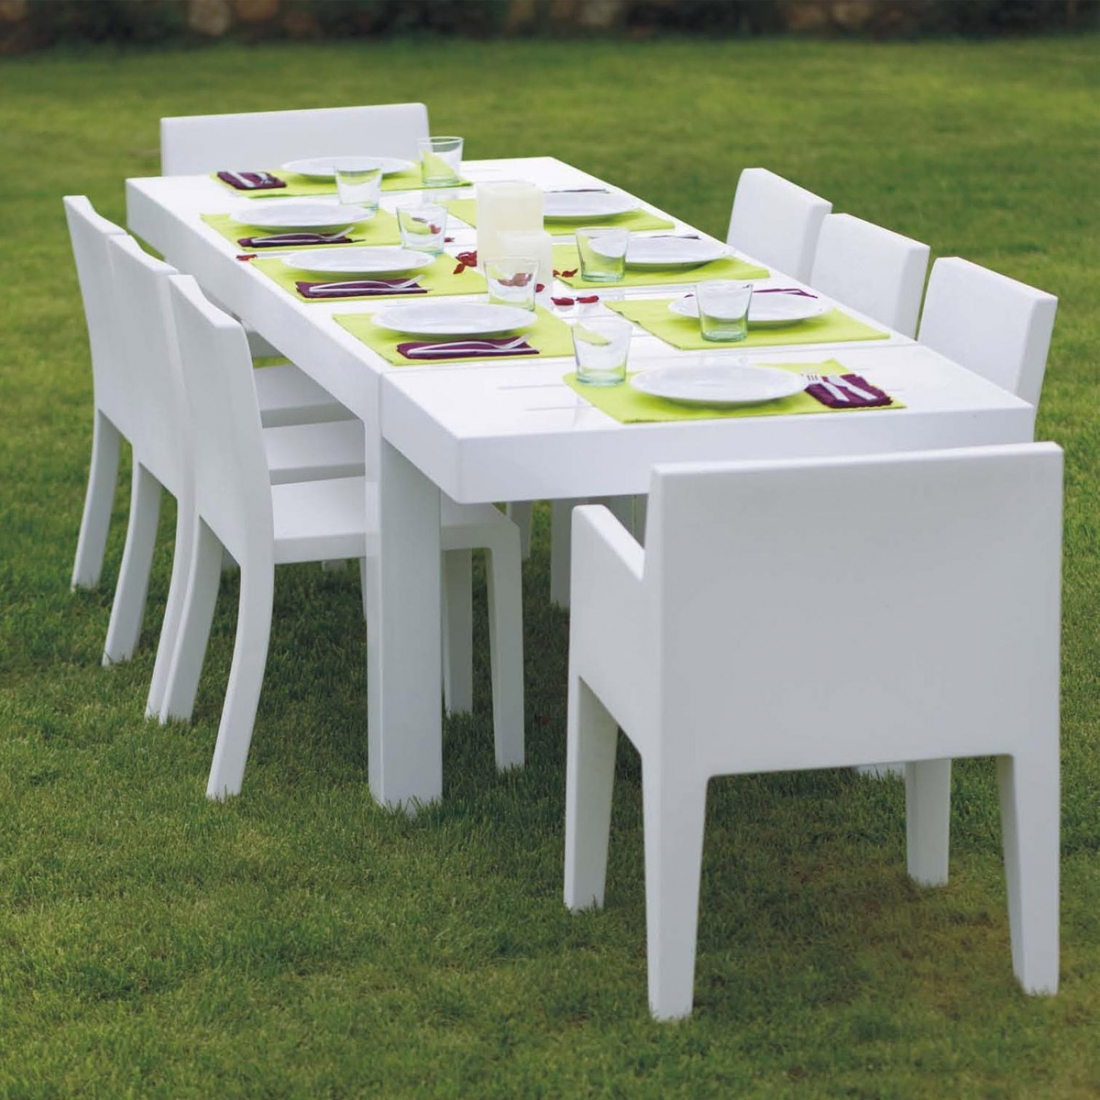 Table de jardin design 10 personnes jut par vondom for Mobilier de jardin design